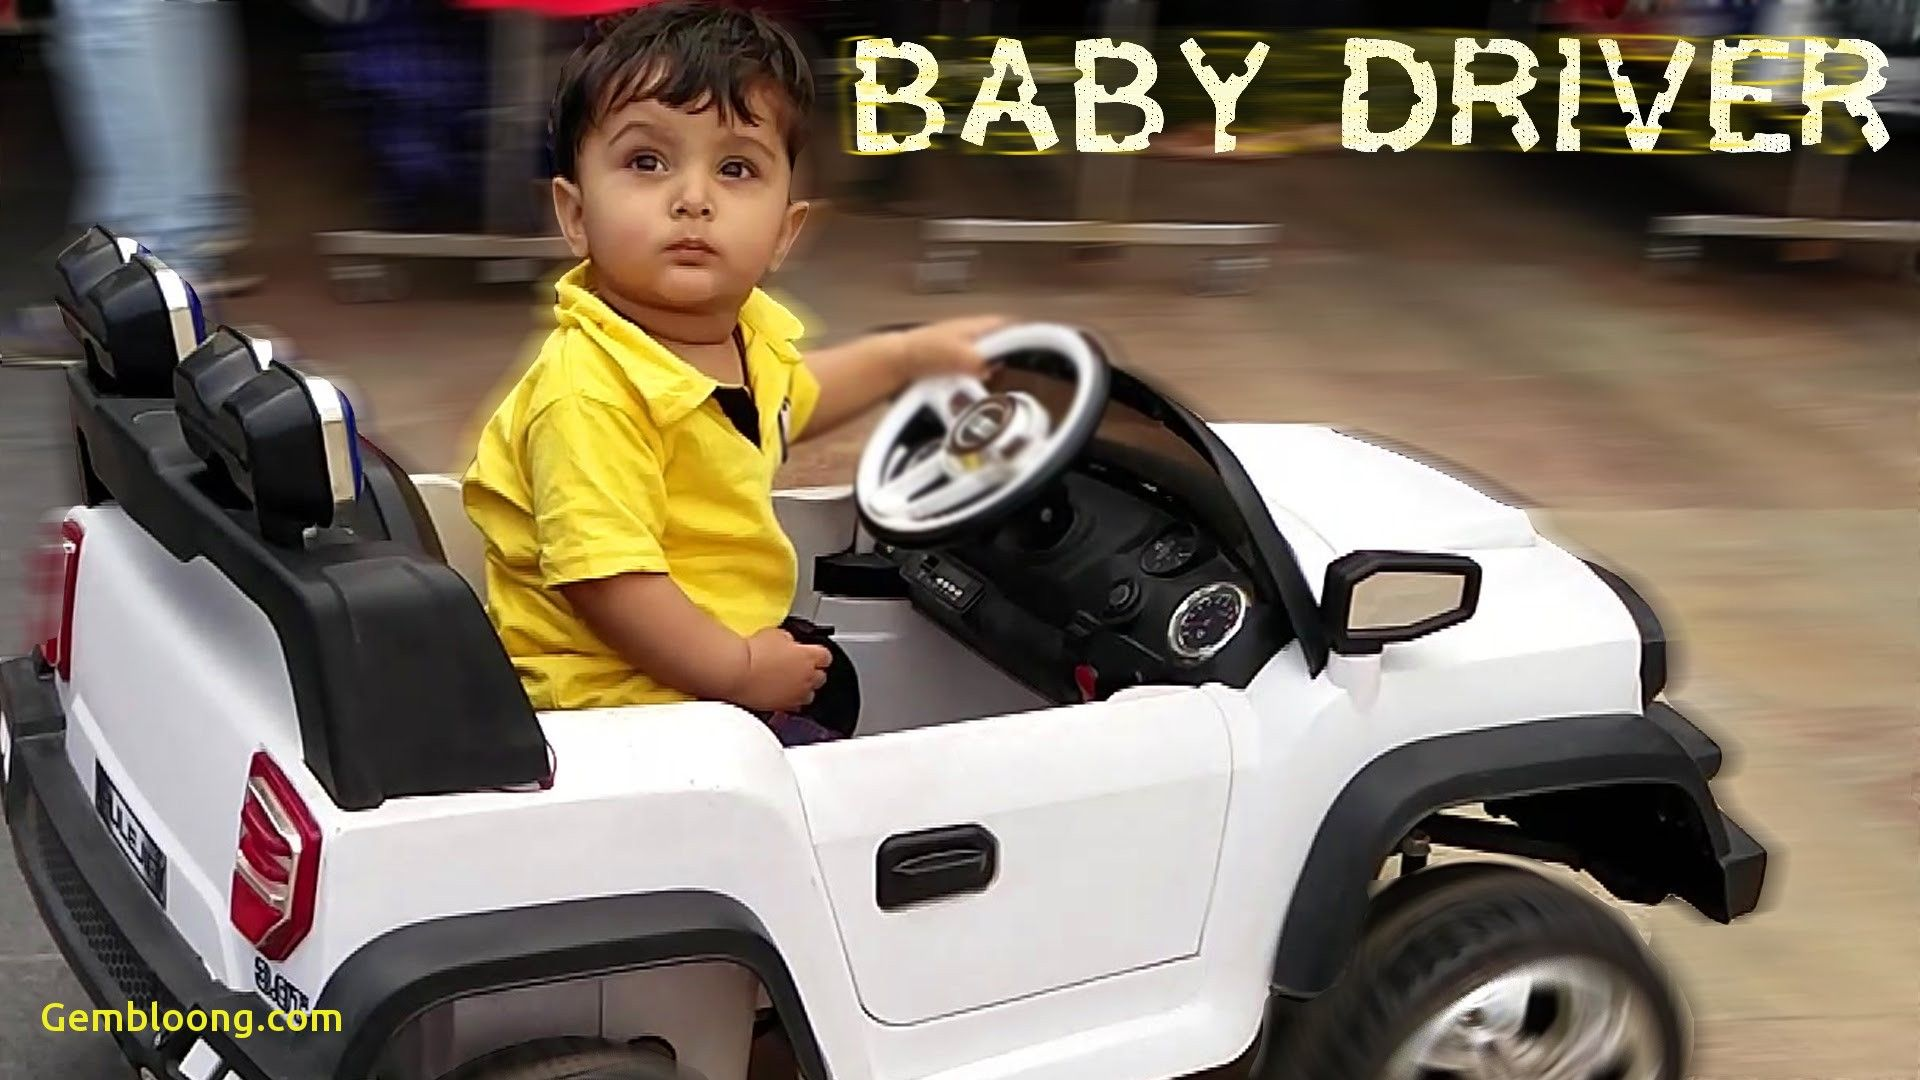 Unique Baby Motor Car in order to my own blog